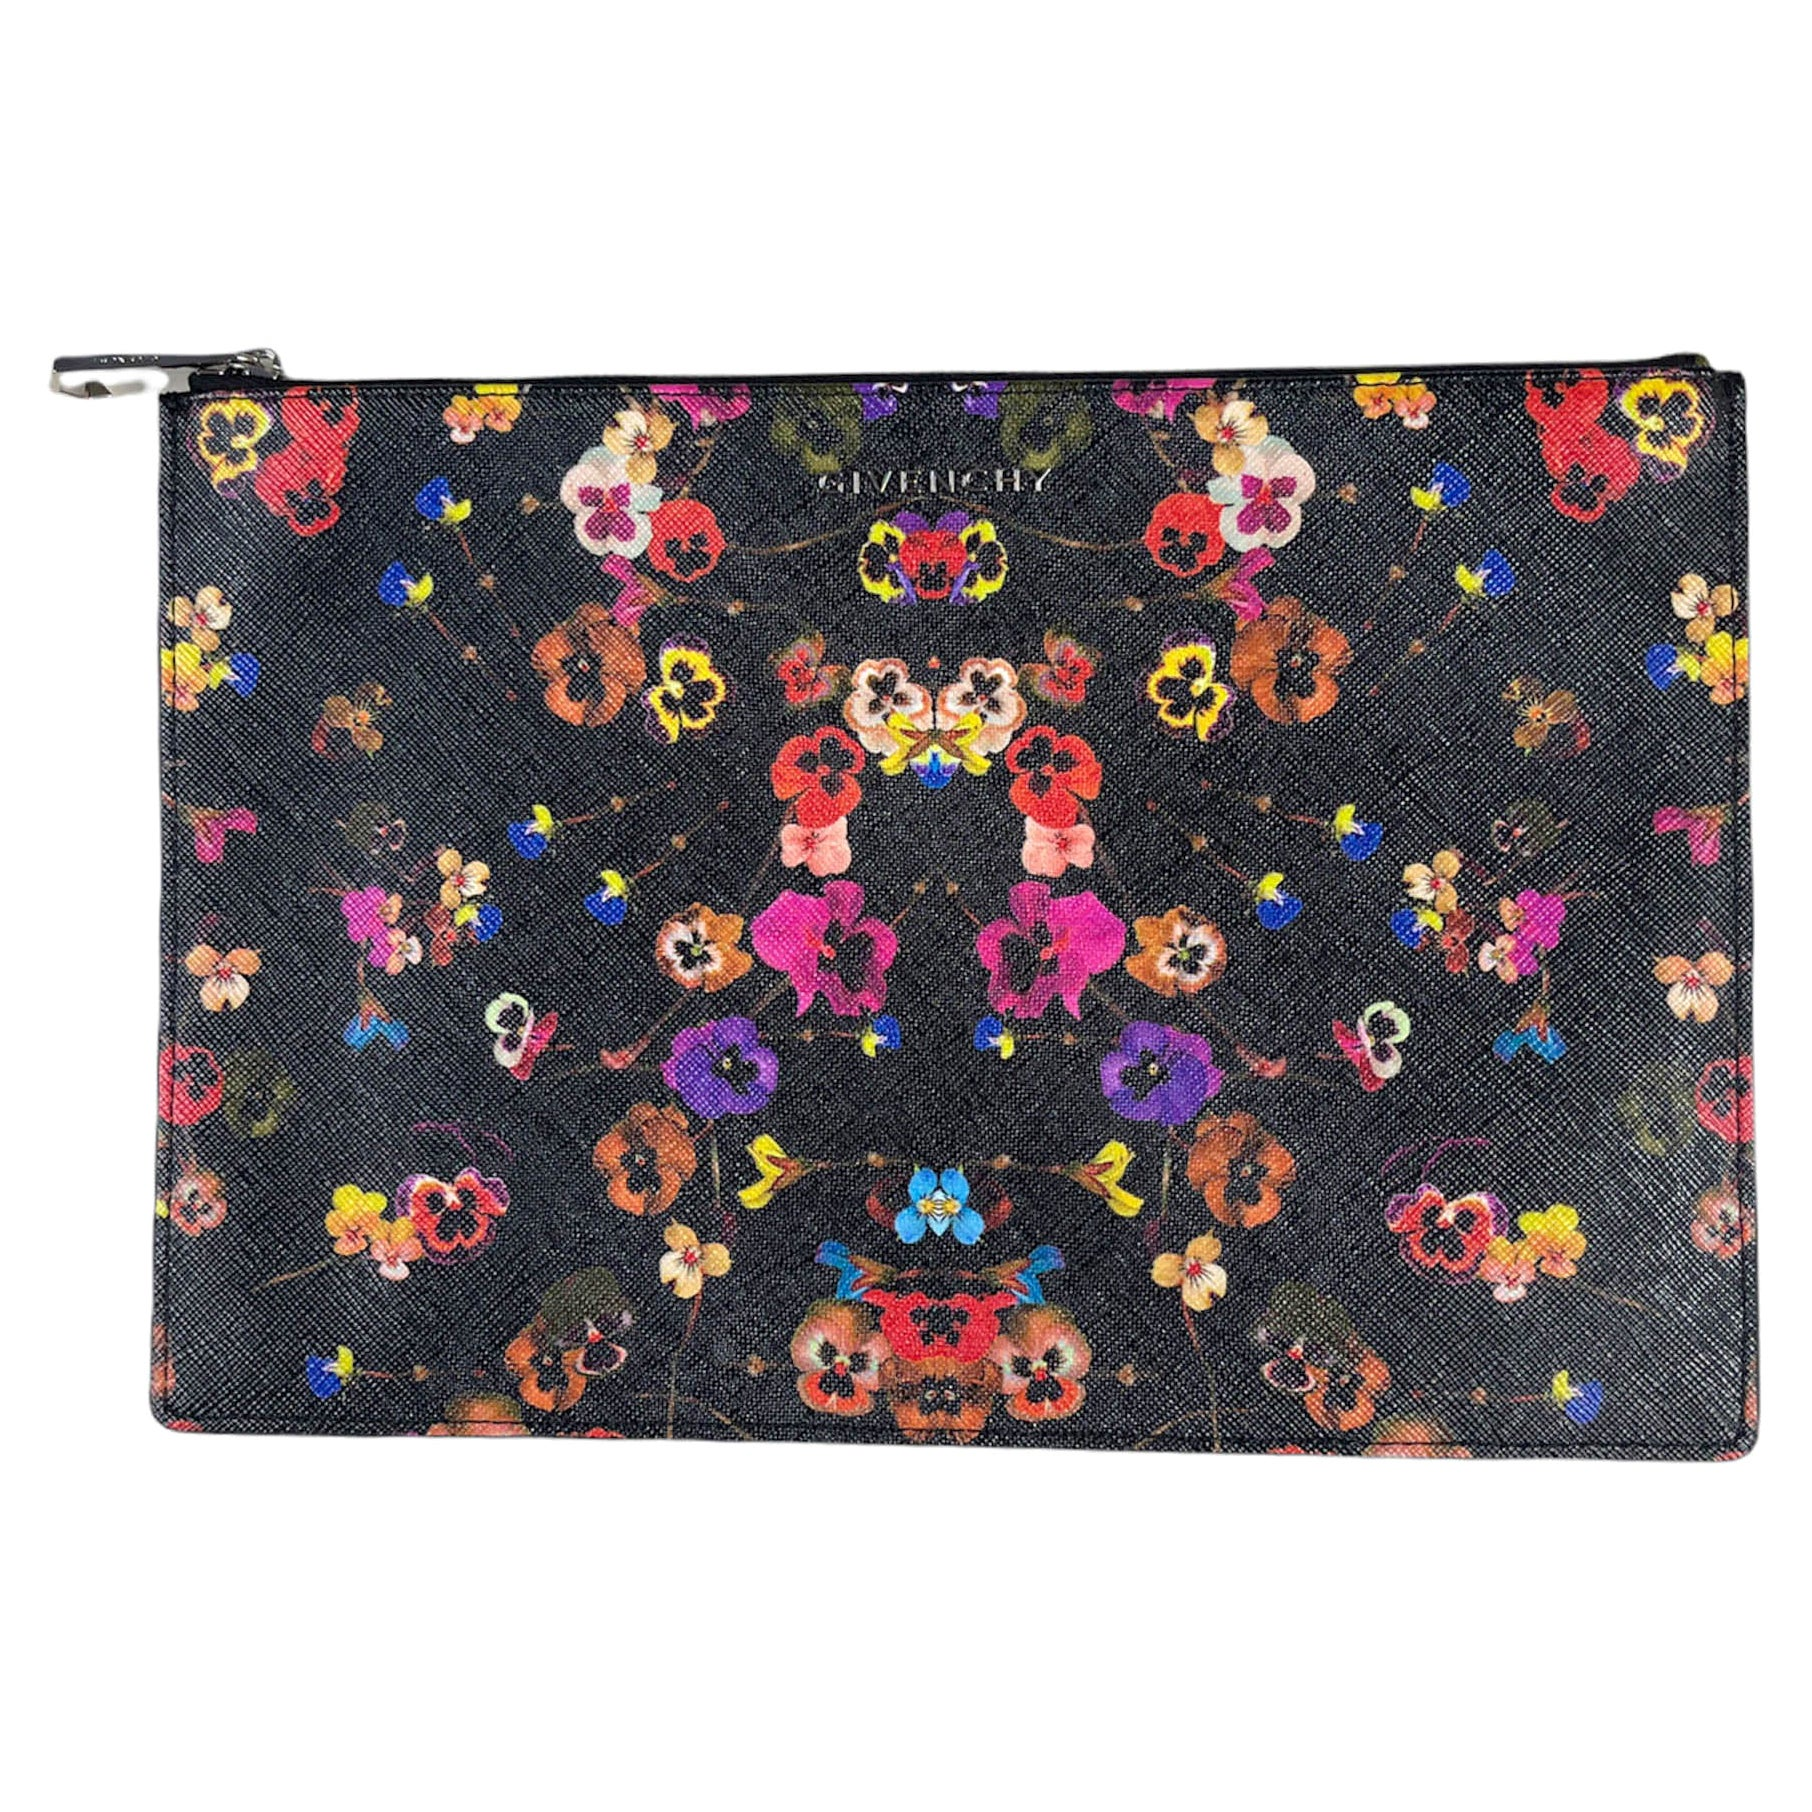 Givenchy Iconic Floral Prints Night Pansy Large Pouch Bag